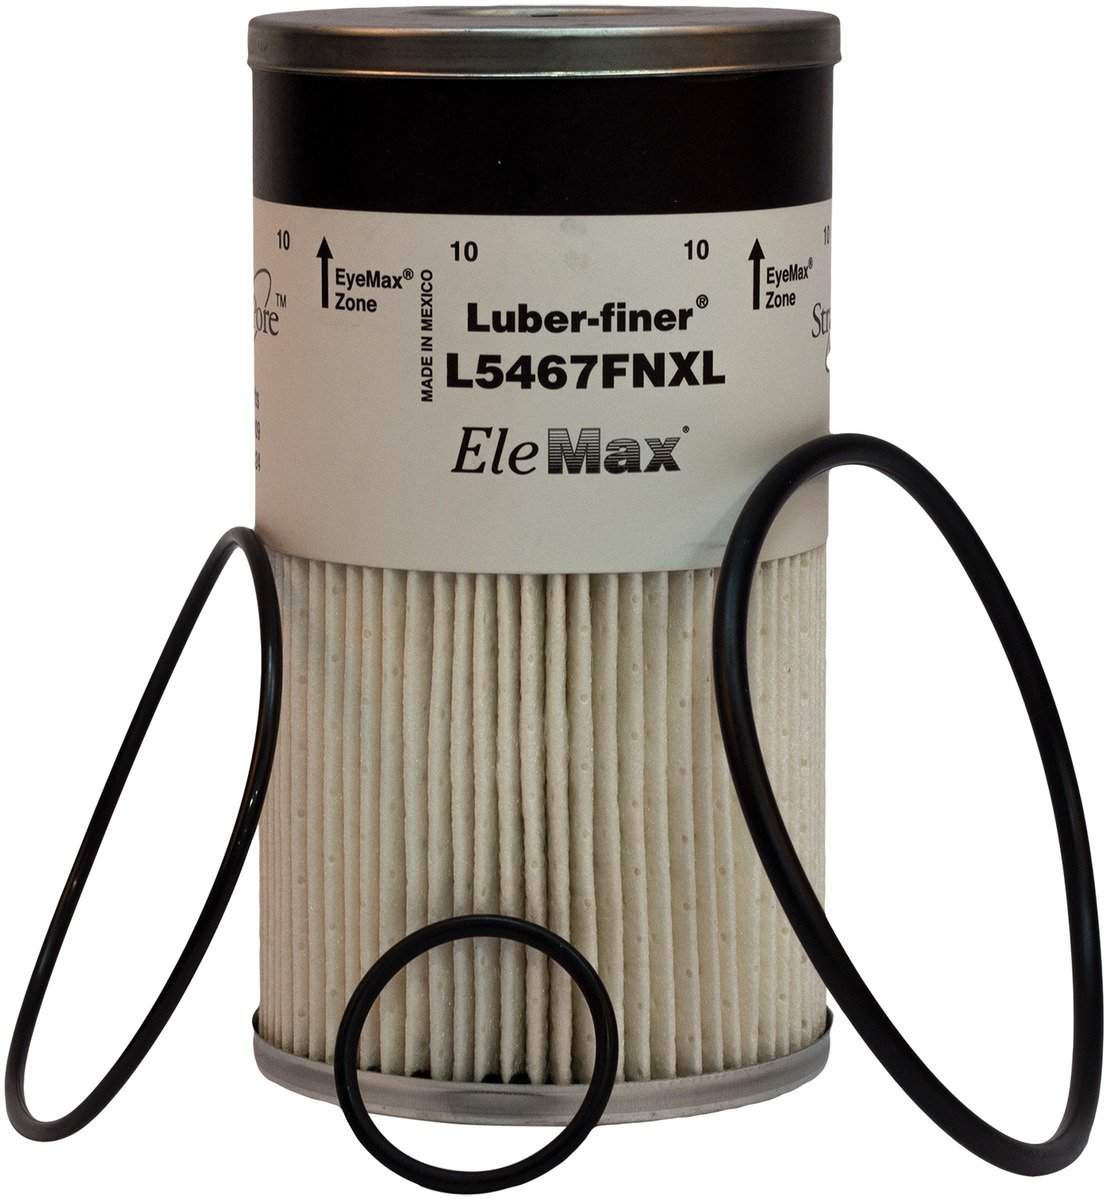 Luber-finer L5467FNXL Heavy Duty Fuel Filter